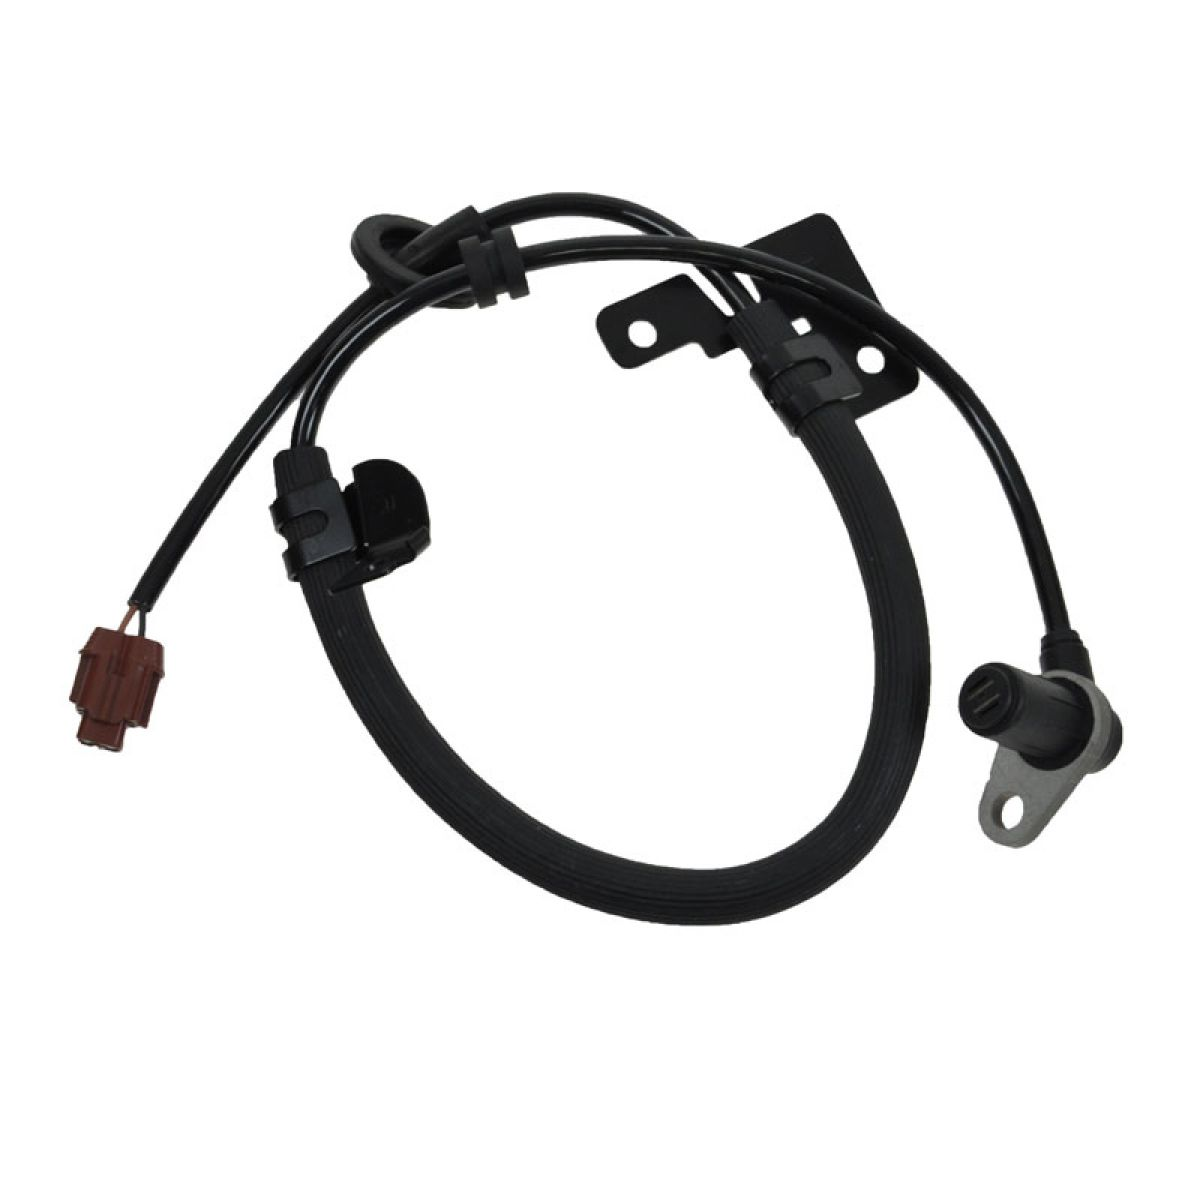 NEW ABS WHEEL SPEED SENSOR **FOR 2000-2001 MAXIMA I30 V6 REAR LEFT DRIVER SIDE